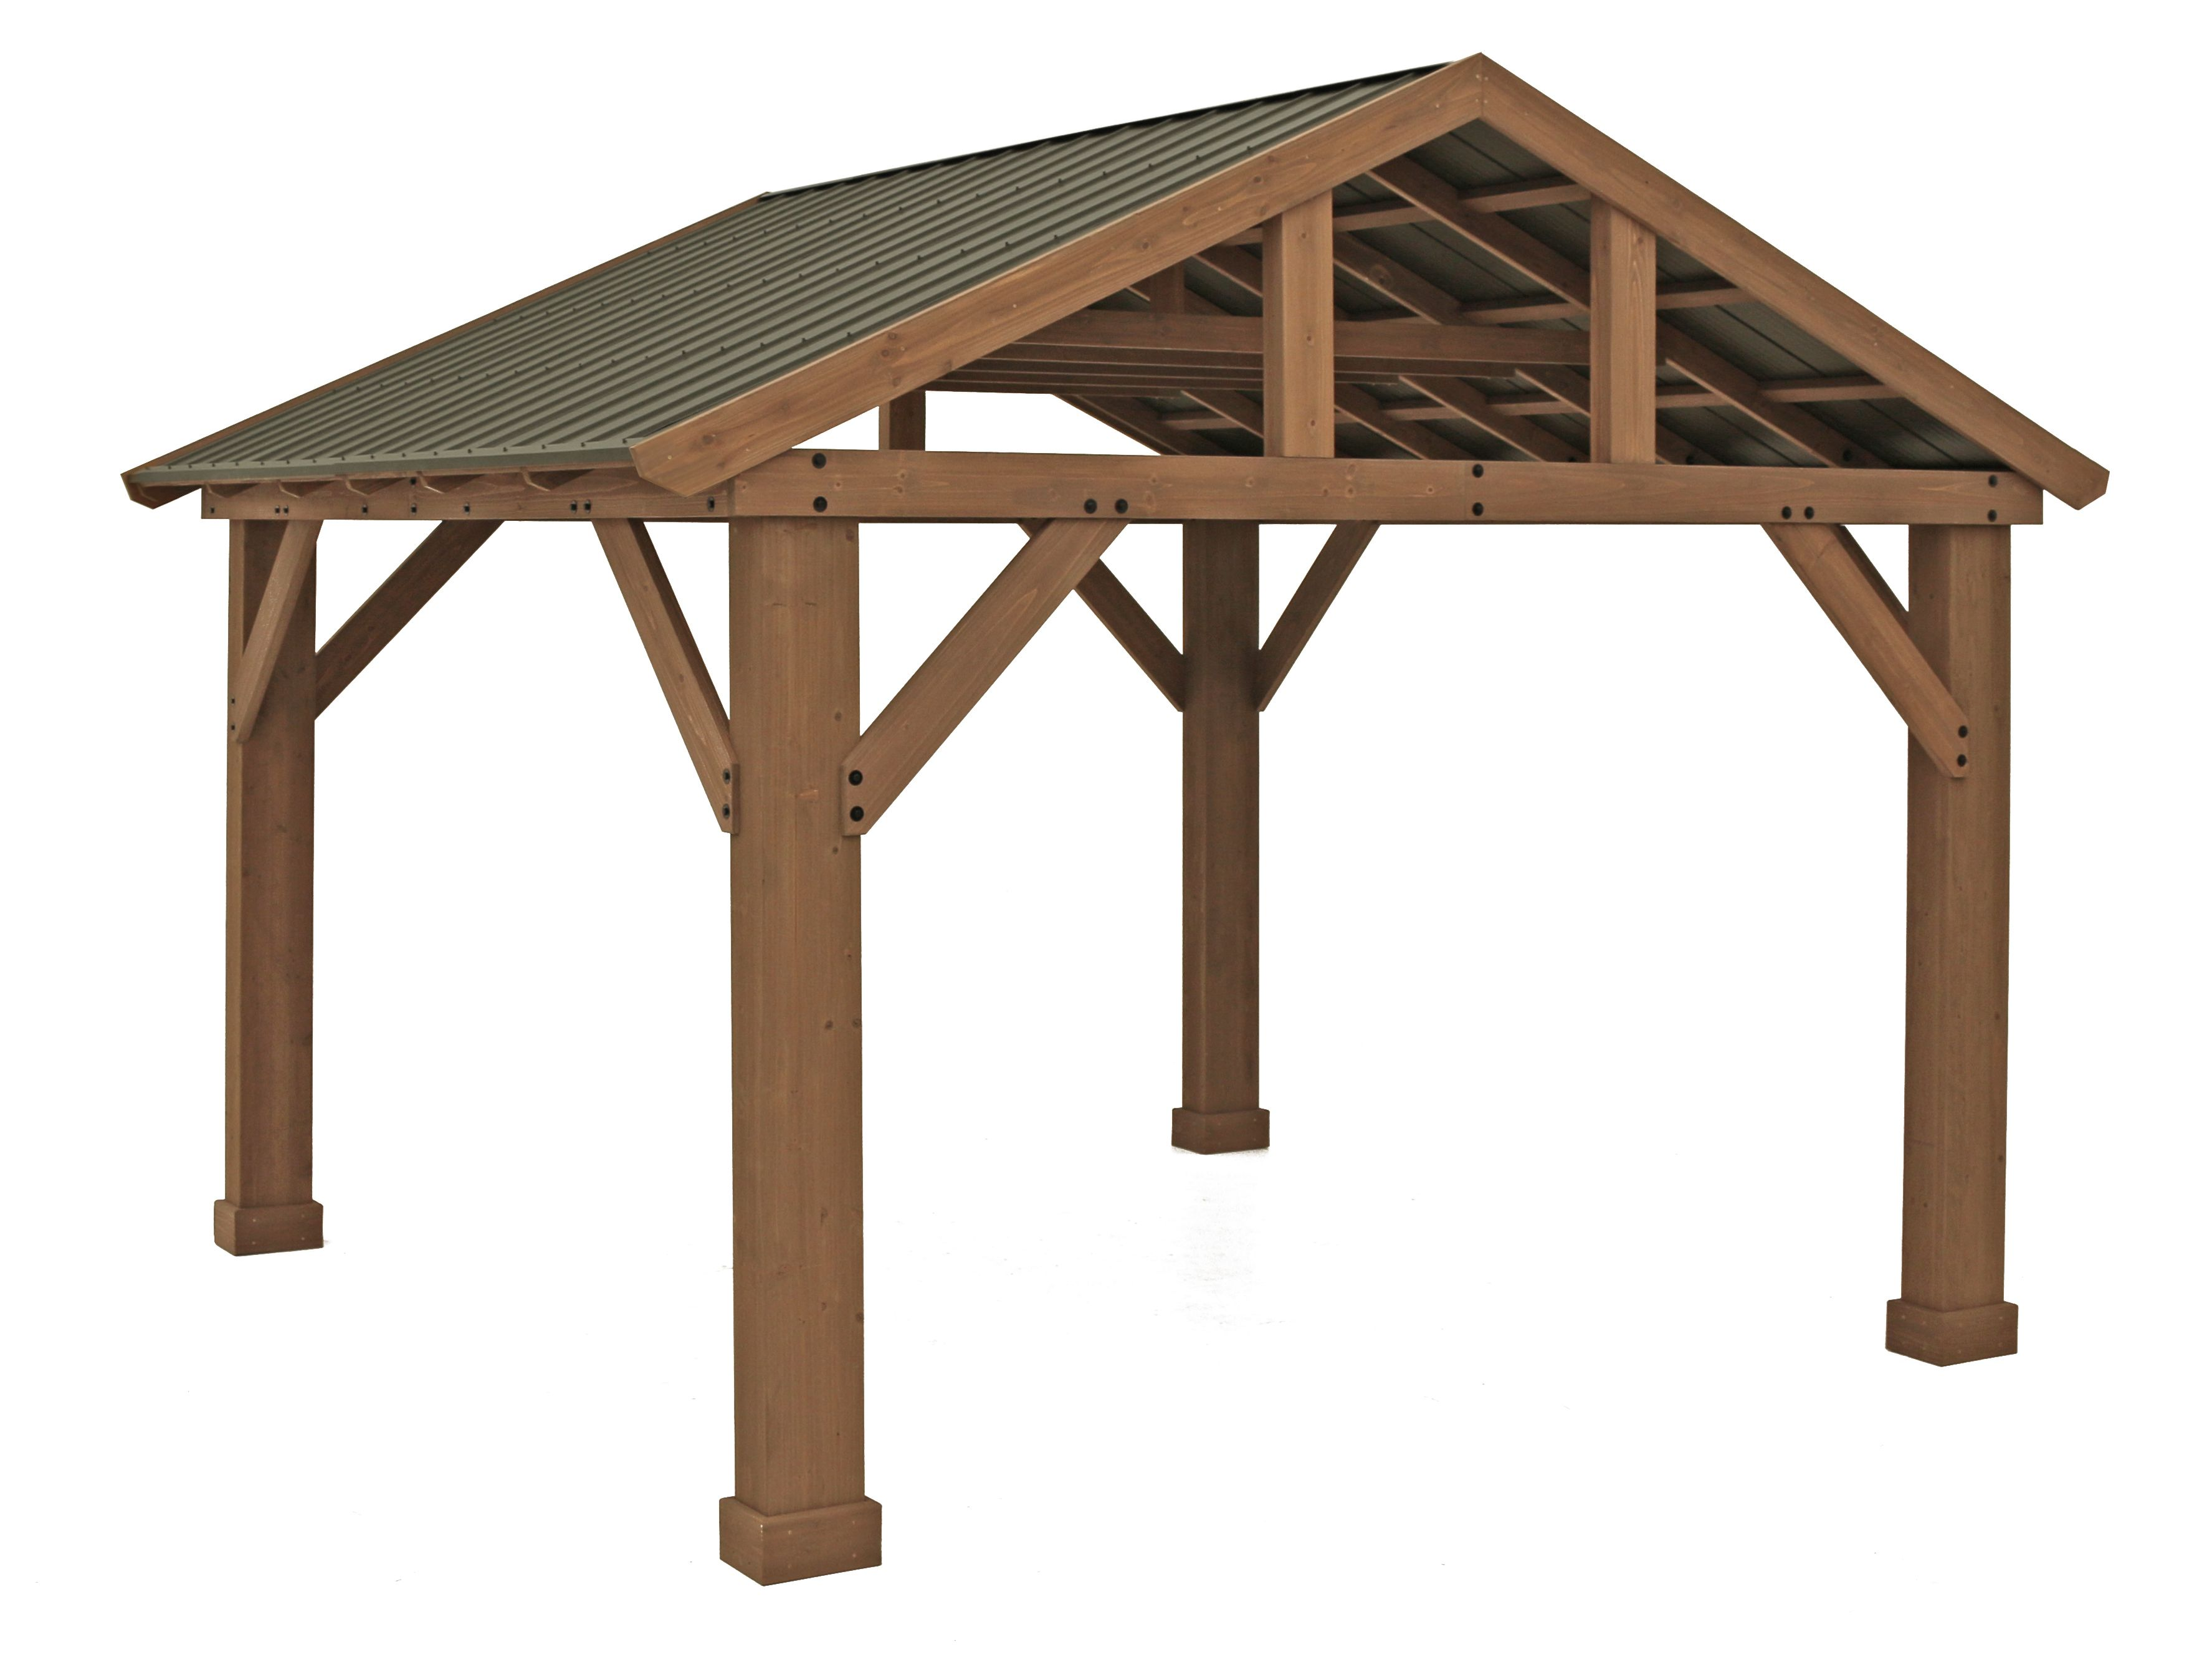 14' x 12' Cedar Pavilion with Aluminum Roof